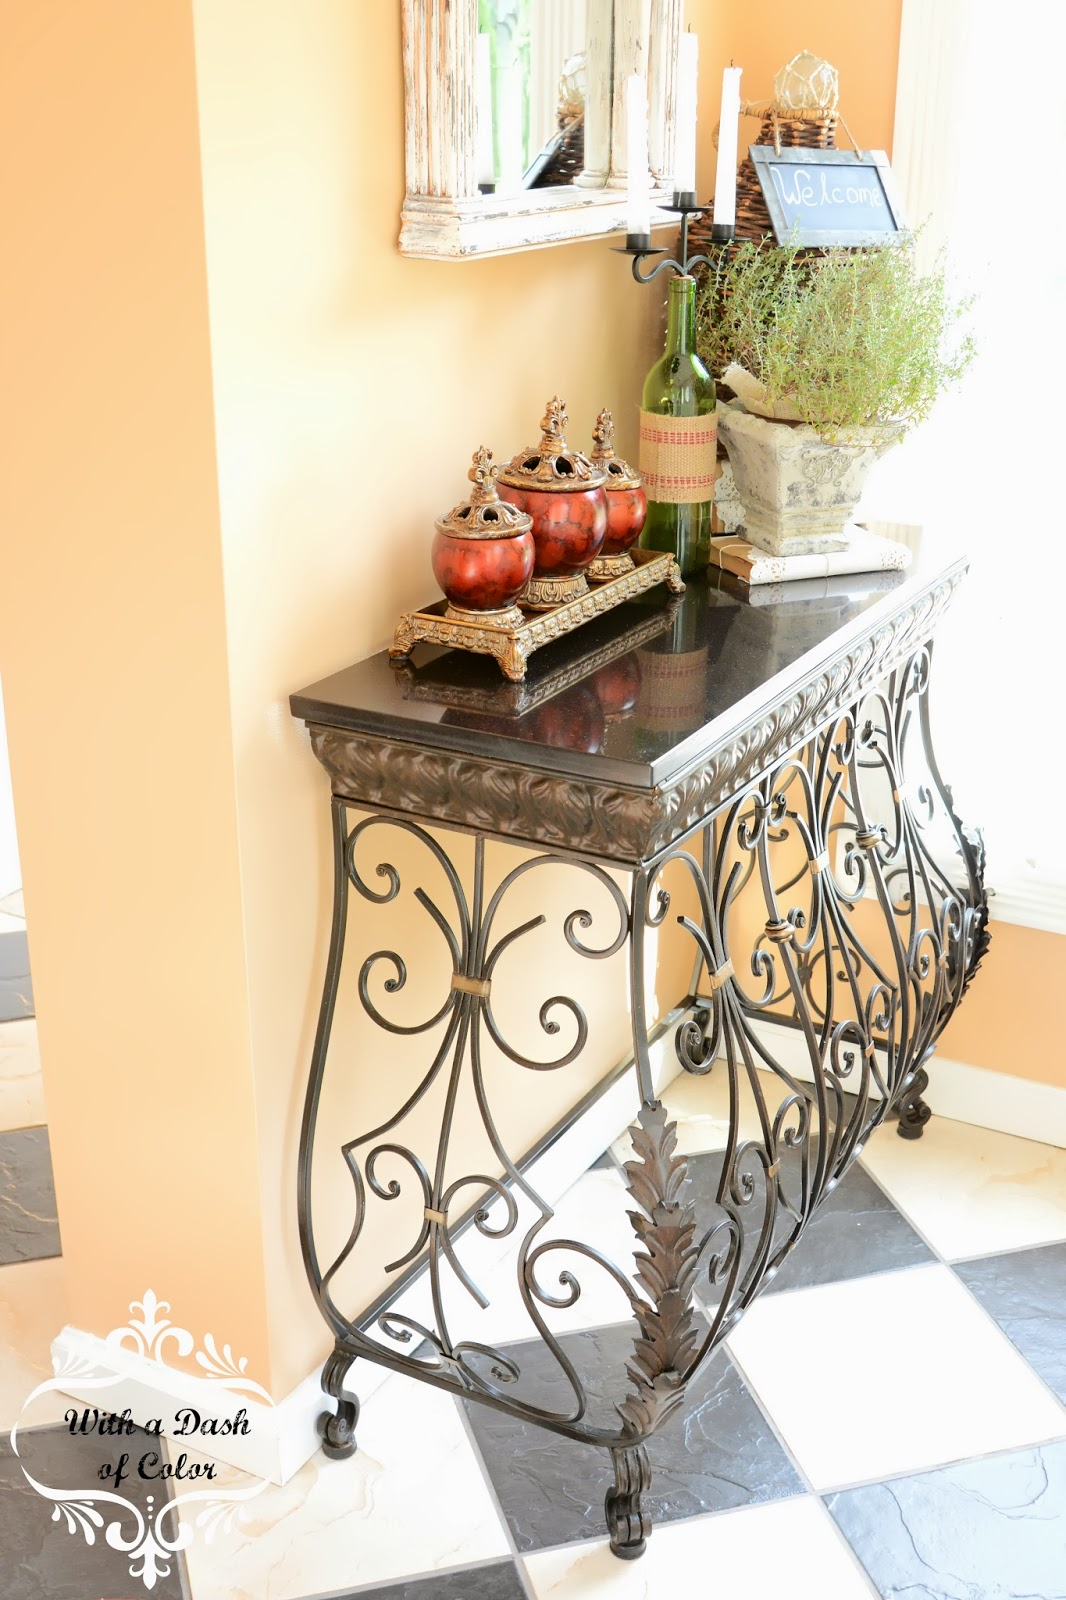 Foyer Table Hobby Lobby : With a dash of color welcome to my foyer